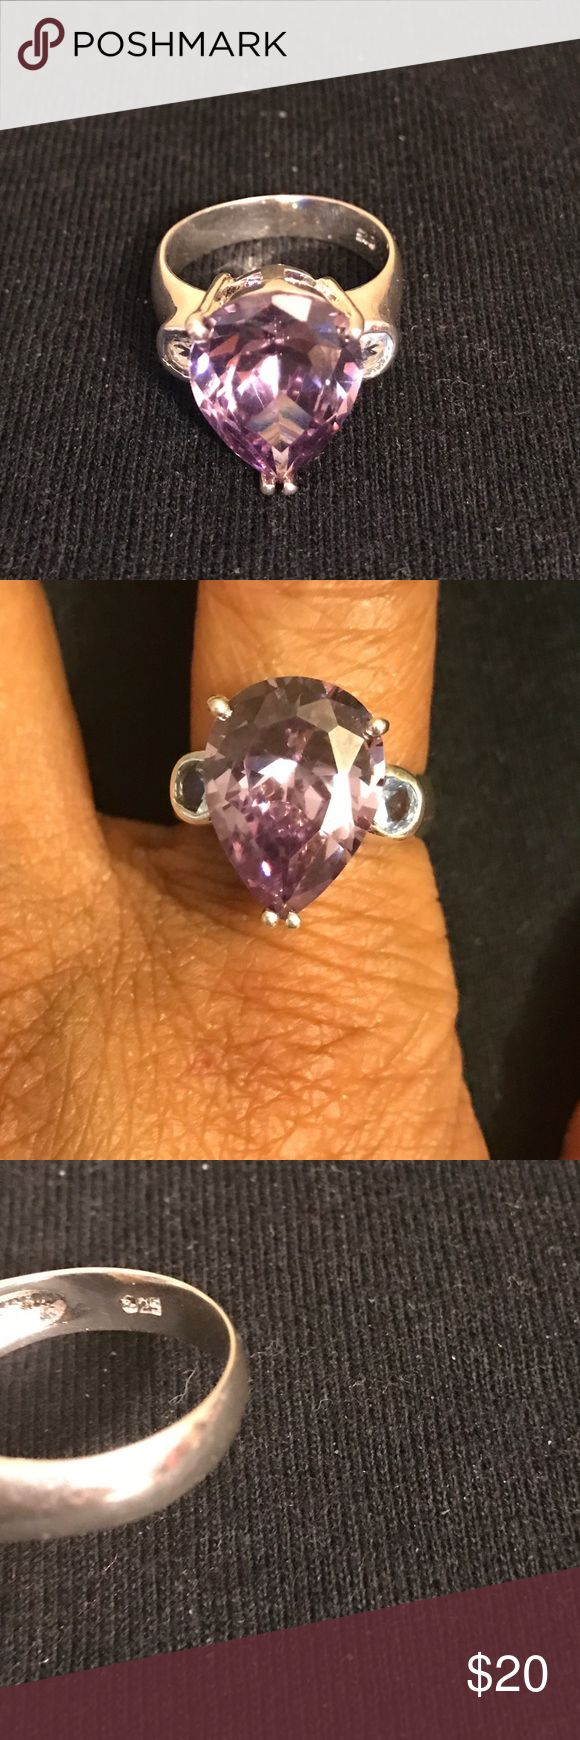 Bling cocktail ring! Stunning! Set in sterling! ⚡️PRICE FIRM!⚡️Beautiful bling lab created amethyst and blue topaz! Clear bright stones. I cannot get the amethyst to show up right but it's more exciting than the picture shows. The blue topaz is indeed light blue. I bought this from another Posher but she accidentally sent the wrong size. She said she sent 7.5. Judging by my own fingers, that's about right. Returns are a hassle so I'm just going to try to recoup some of what I paid. 🚫No…